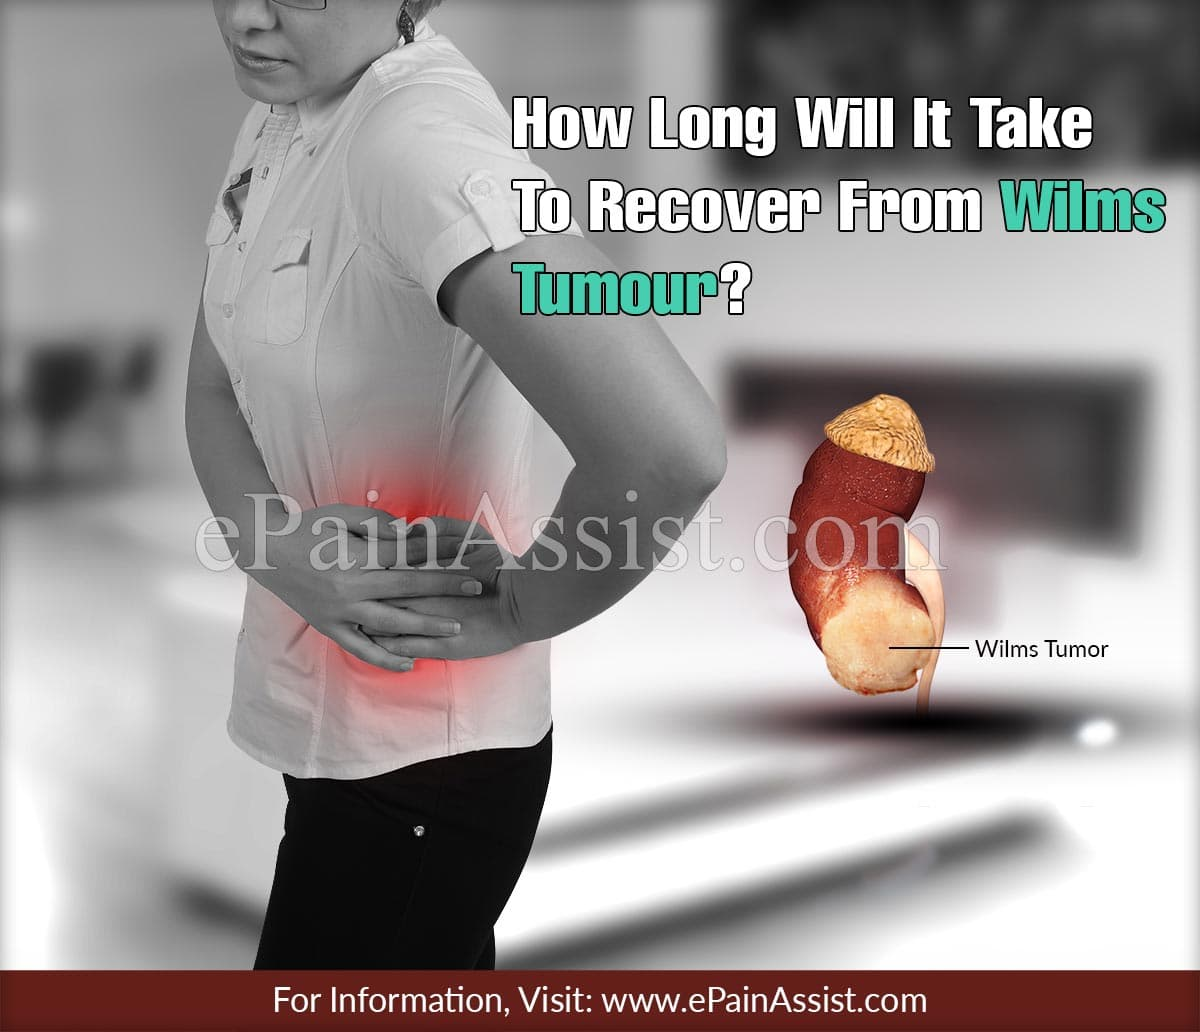 How Long Will It Take To Recover From Wilms Tumour?